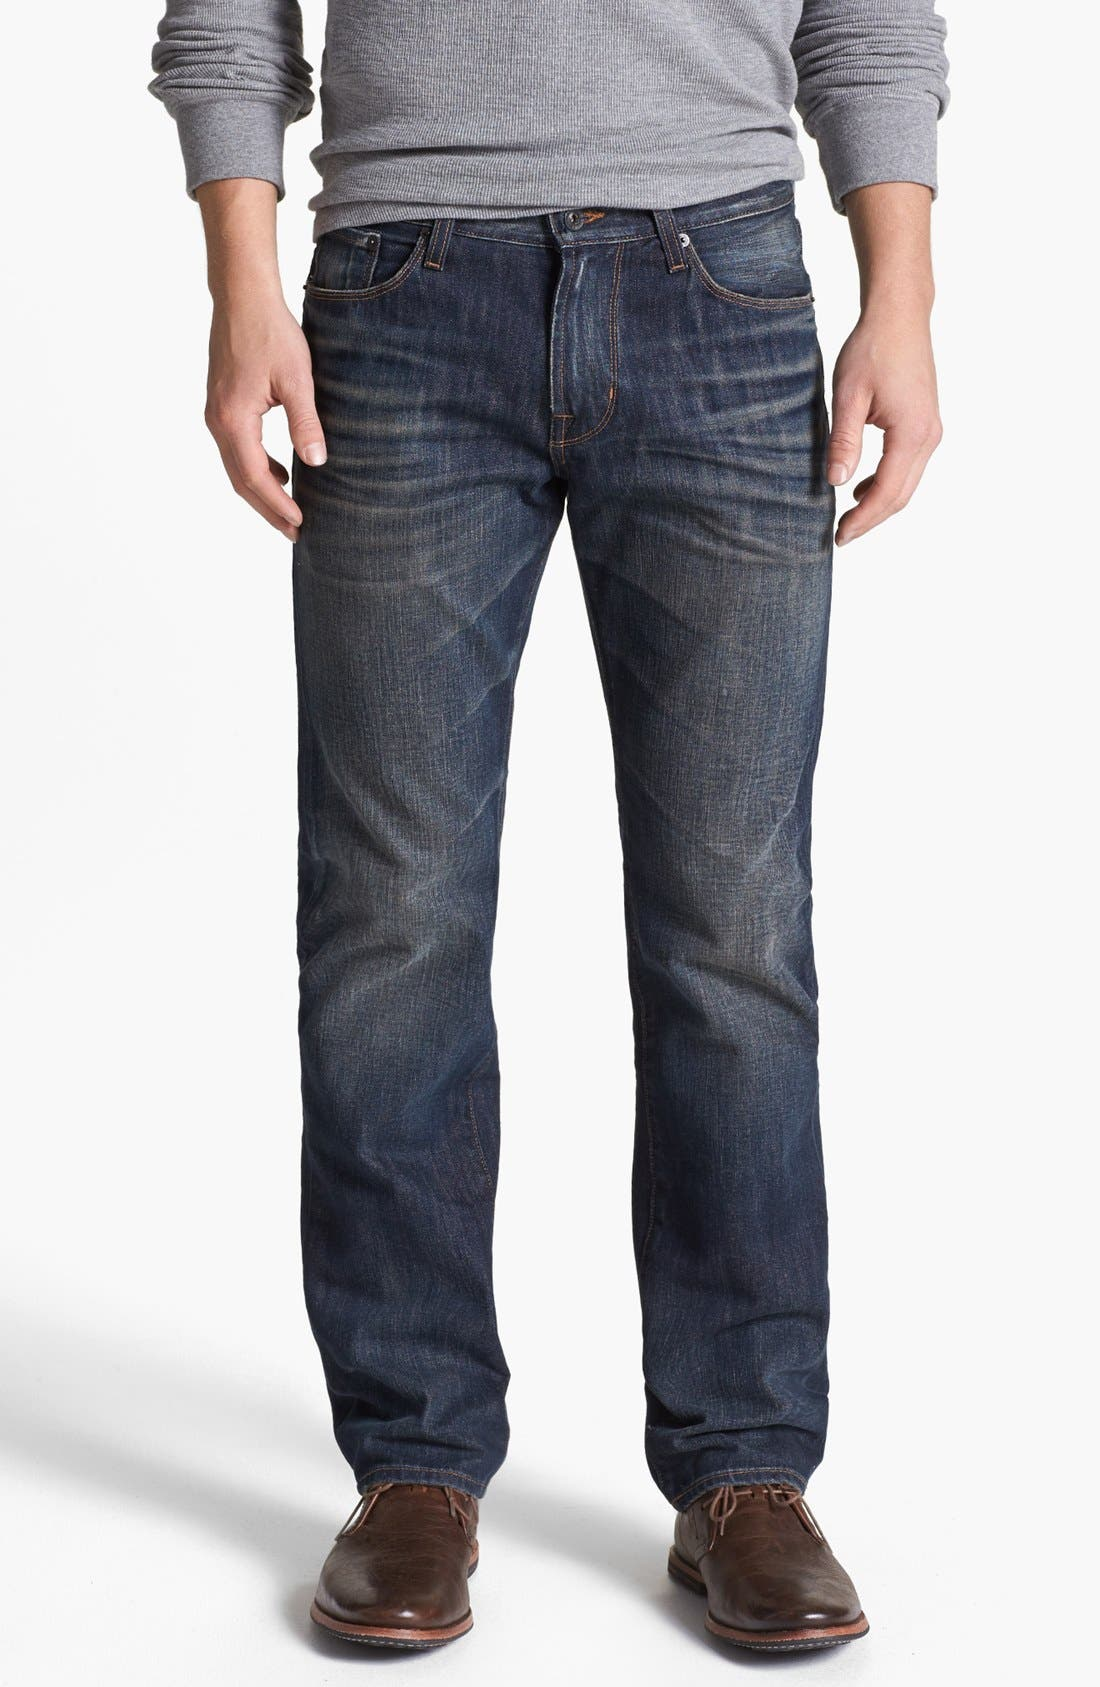 Alternate Image 1 Selected - Big Star 'Division' Straight Leg Jeans (6 Year Piston)